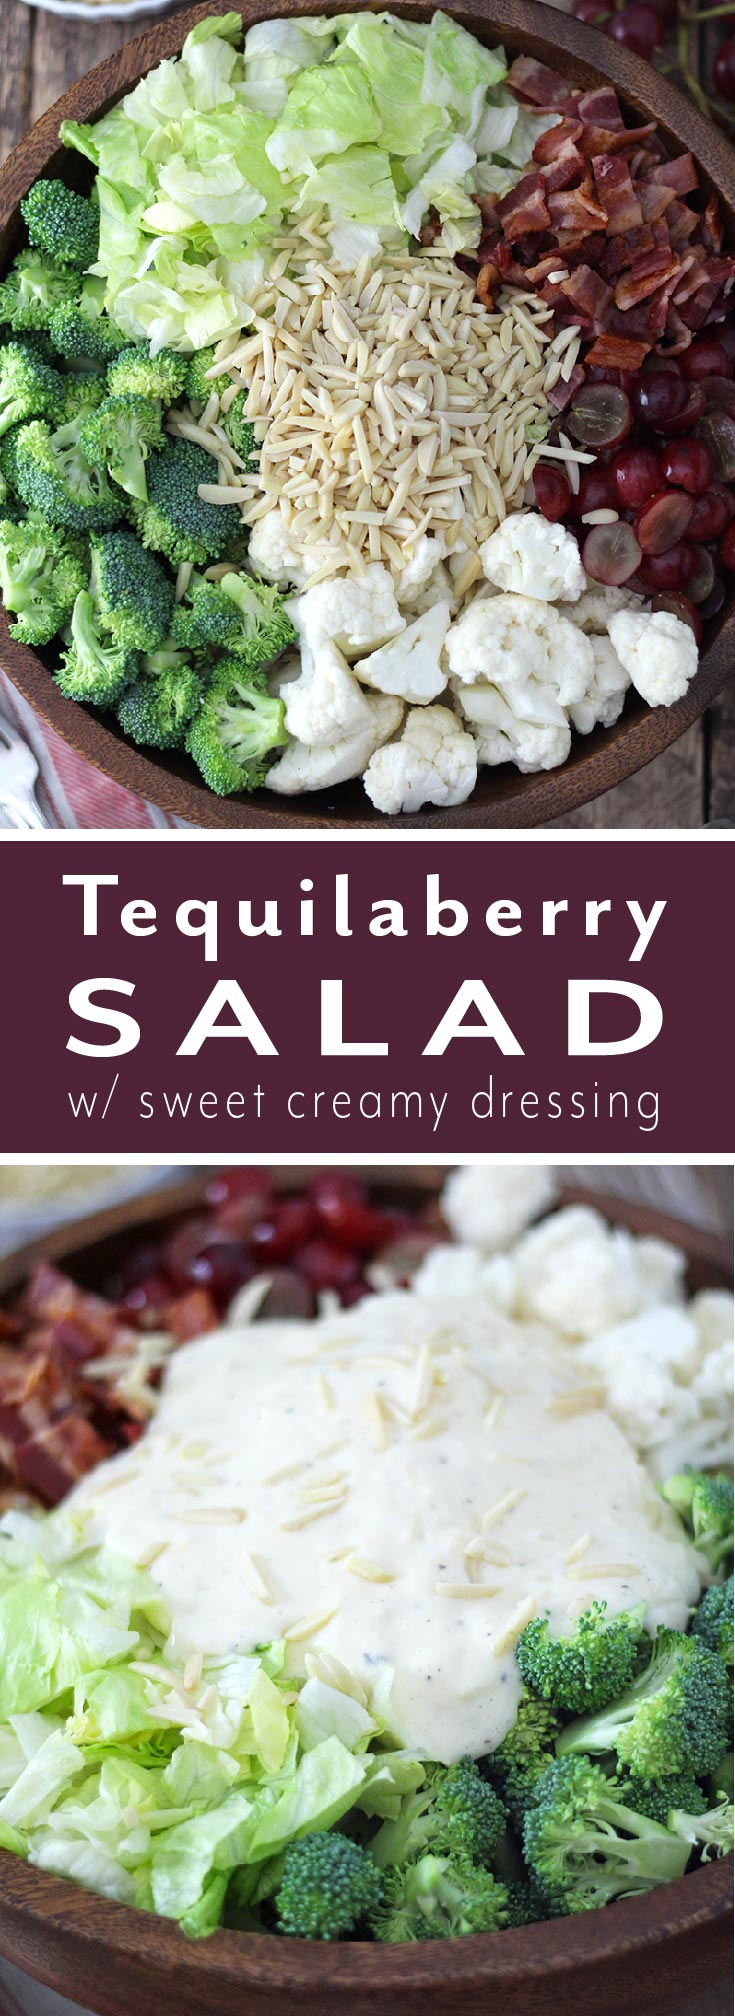 Easy and delicious side salad packed with veggies, bacon, and grapes then drizzled with a sweet creamy dressing. Both adults and kids devour this salad! It's perfect for a BBQ or quick weeknight side dish, and feeds a crowd.